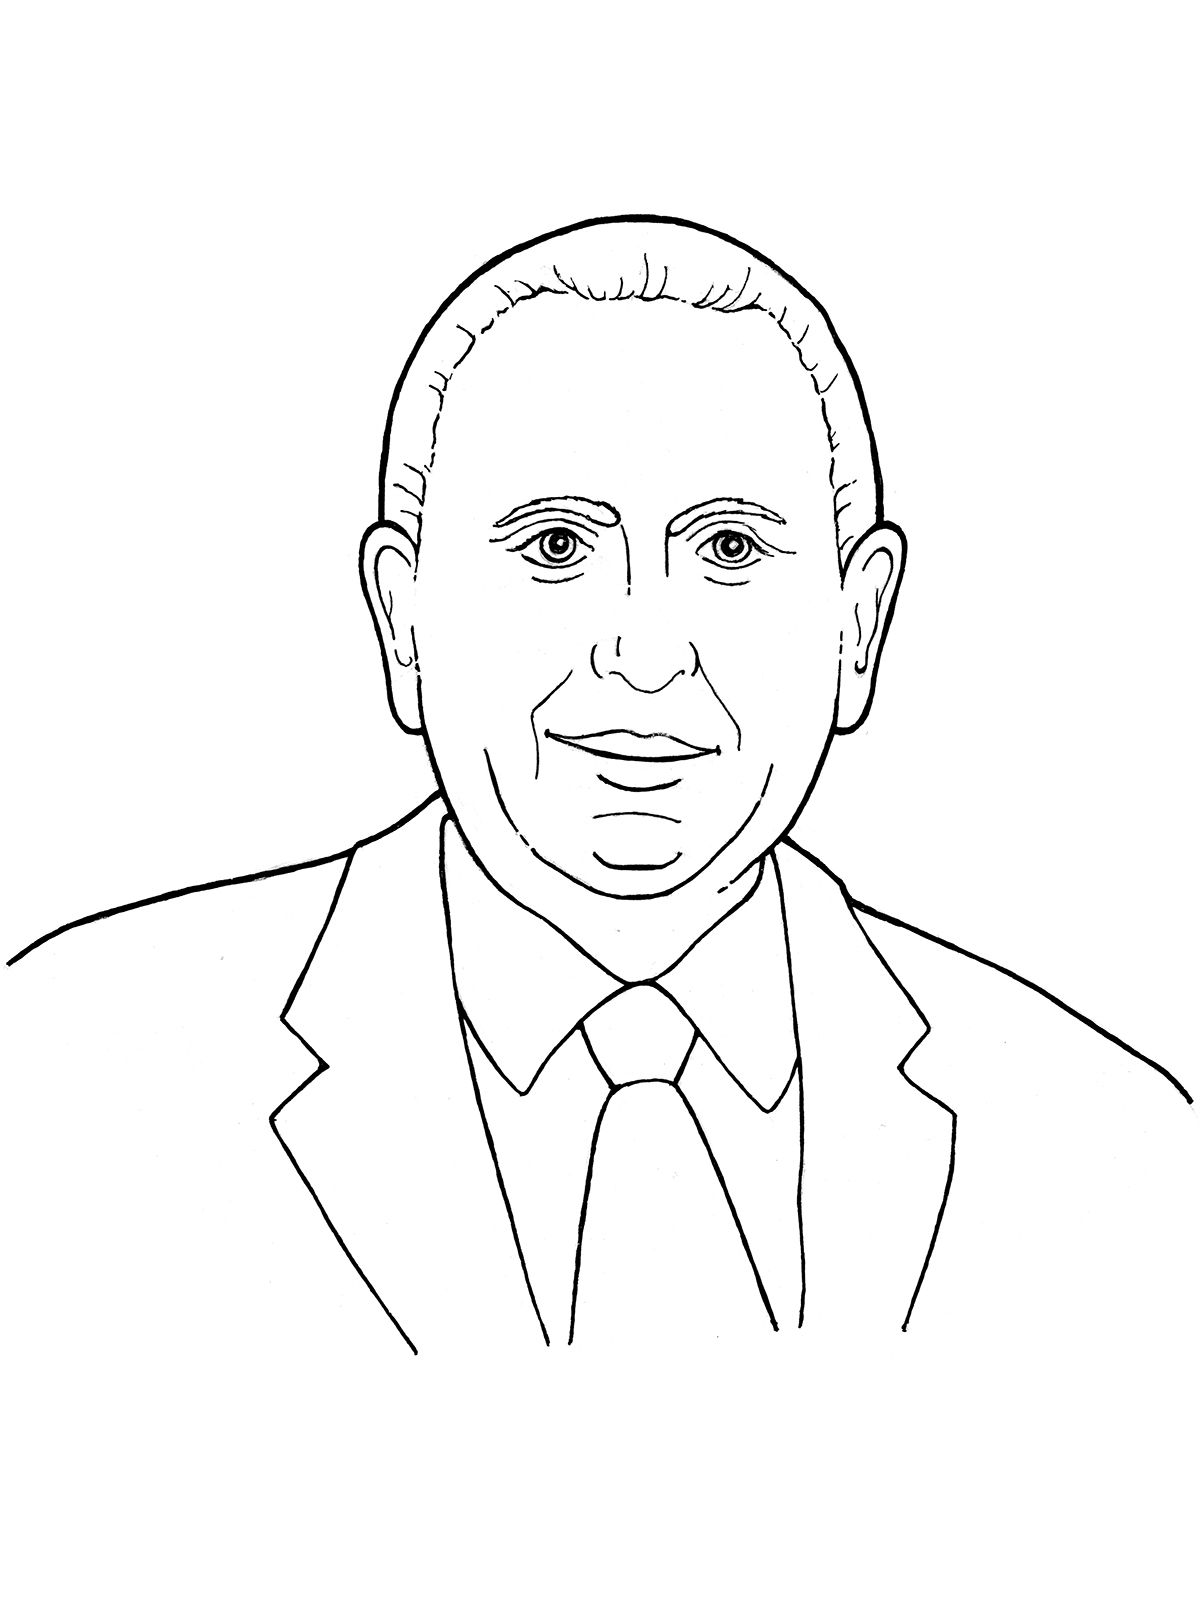 Lds black and white clipart of prophets jpg transparent download An illustration of our latter-day prophet, Thomas S. Monson ... jpg transparent download